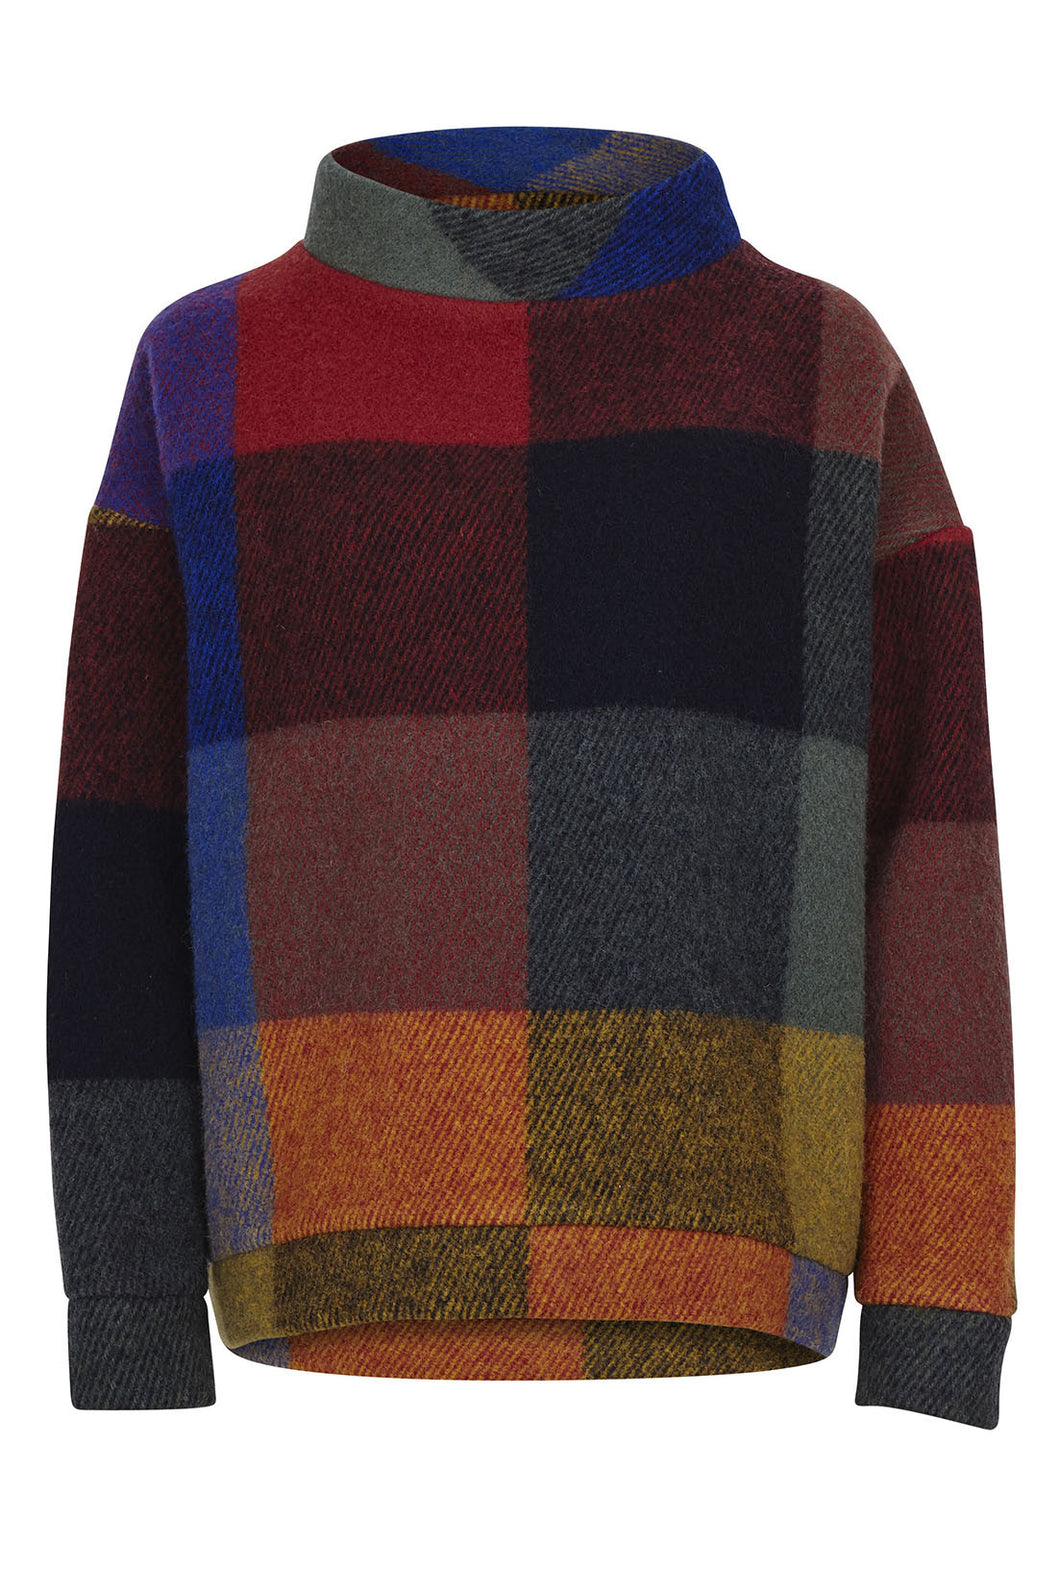 Åsly Sweater